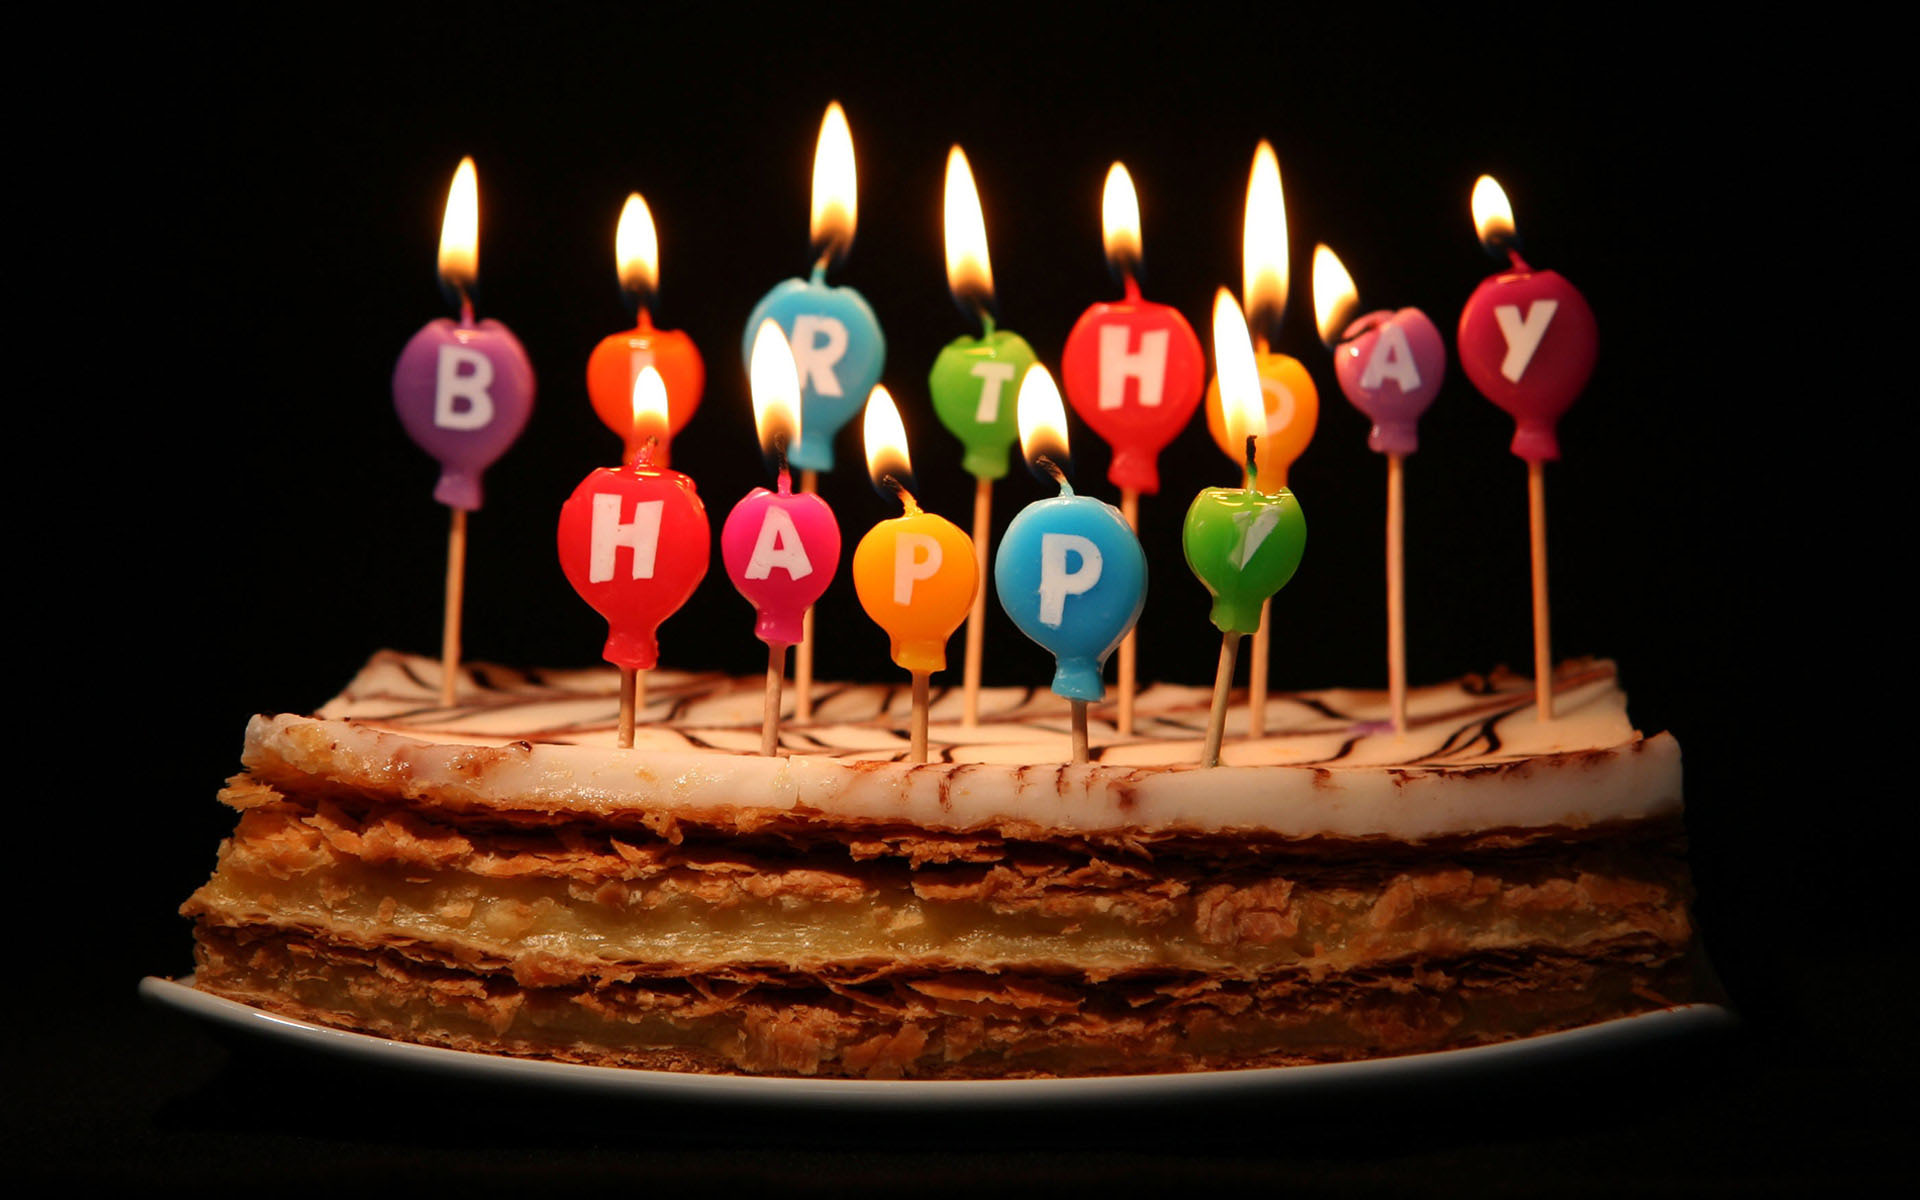 happy birthday greetings hd images ; 20-Awesome-Happy-Birthday-HD-Pictures-to-wish-your-Loved-Ones-7